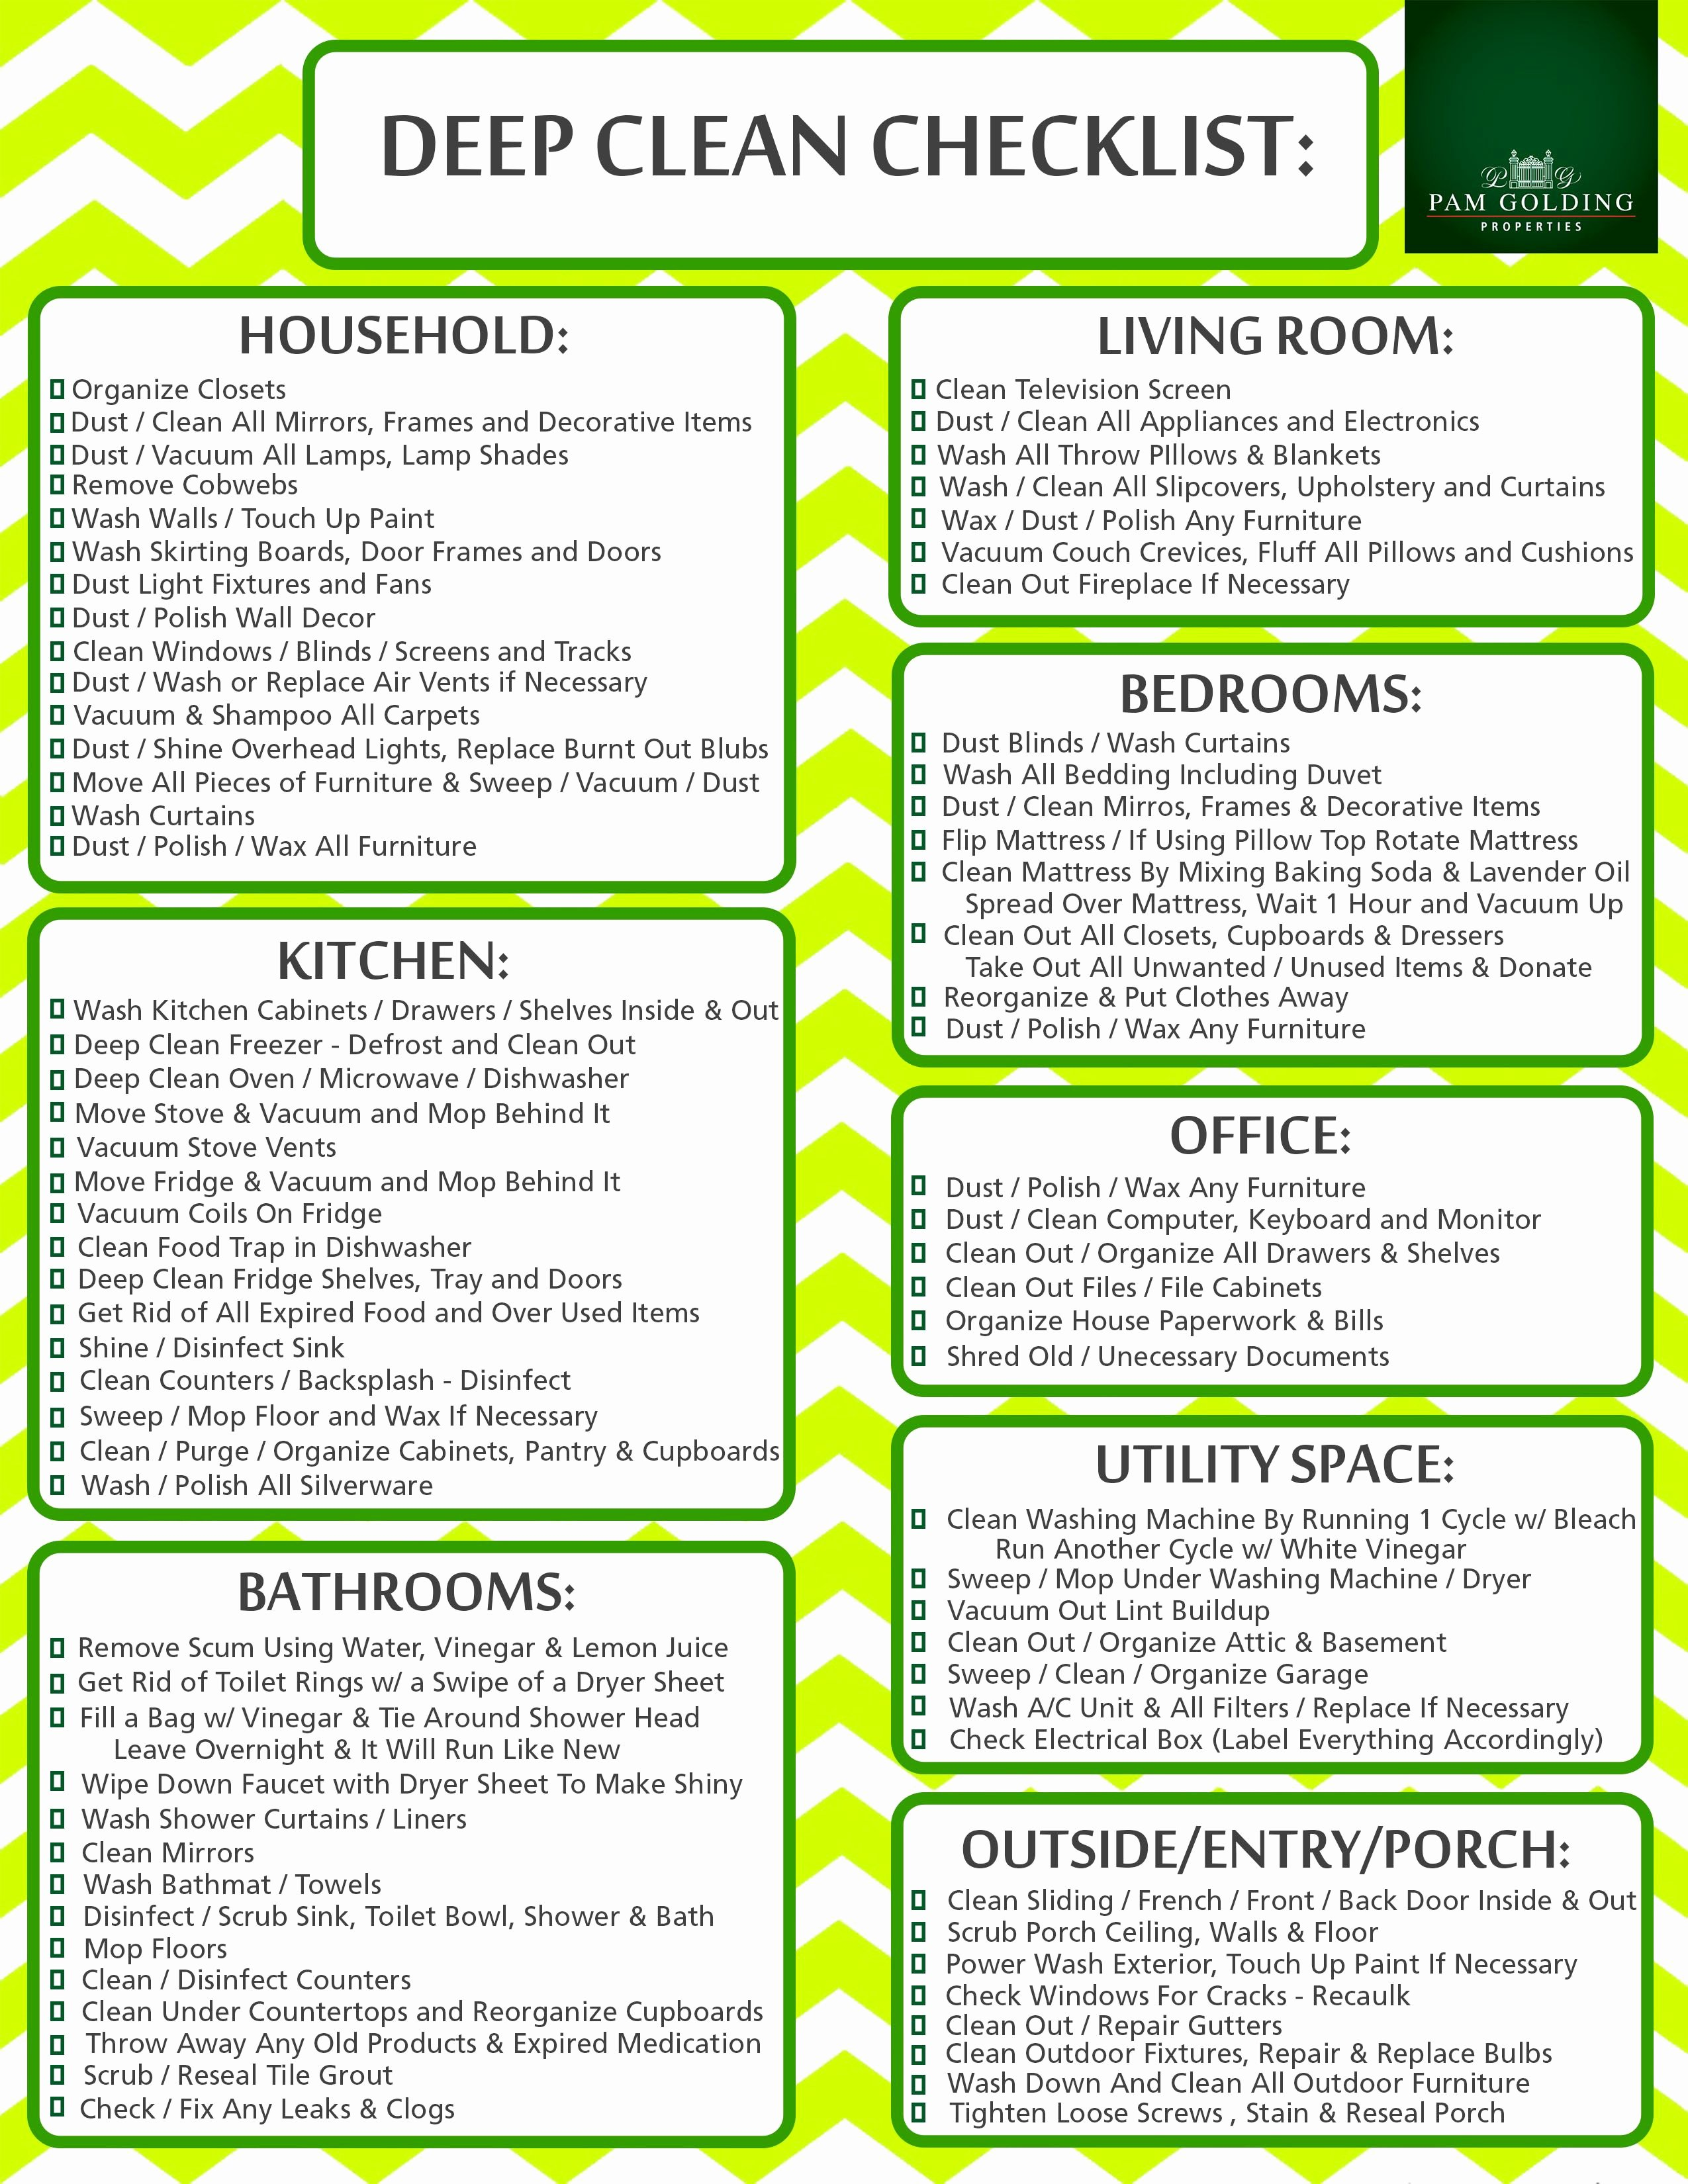 Deep Cleaning Checklist for Housekeeper Unique Click the Image to Print Your Deep Clean Checklist